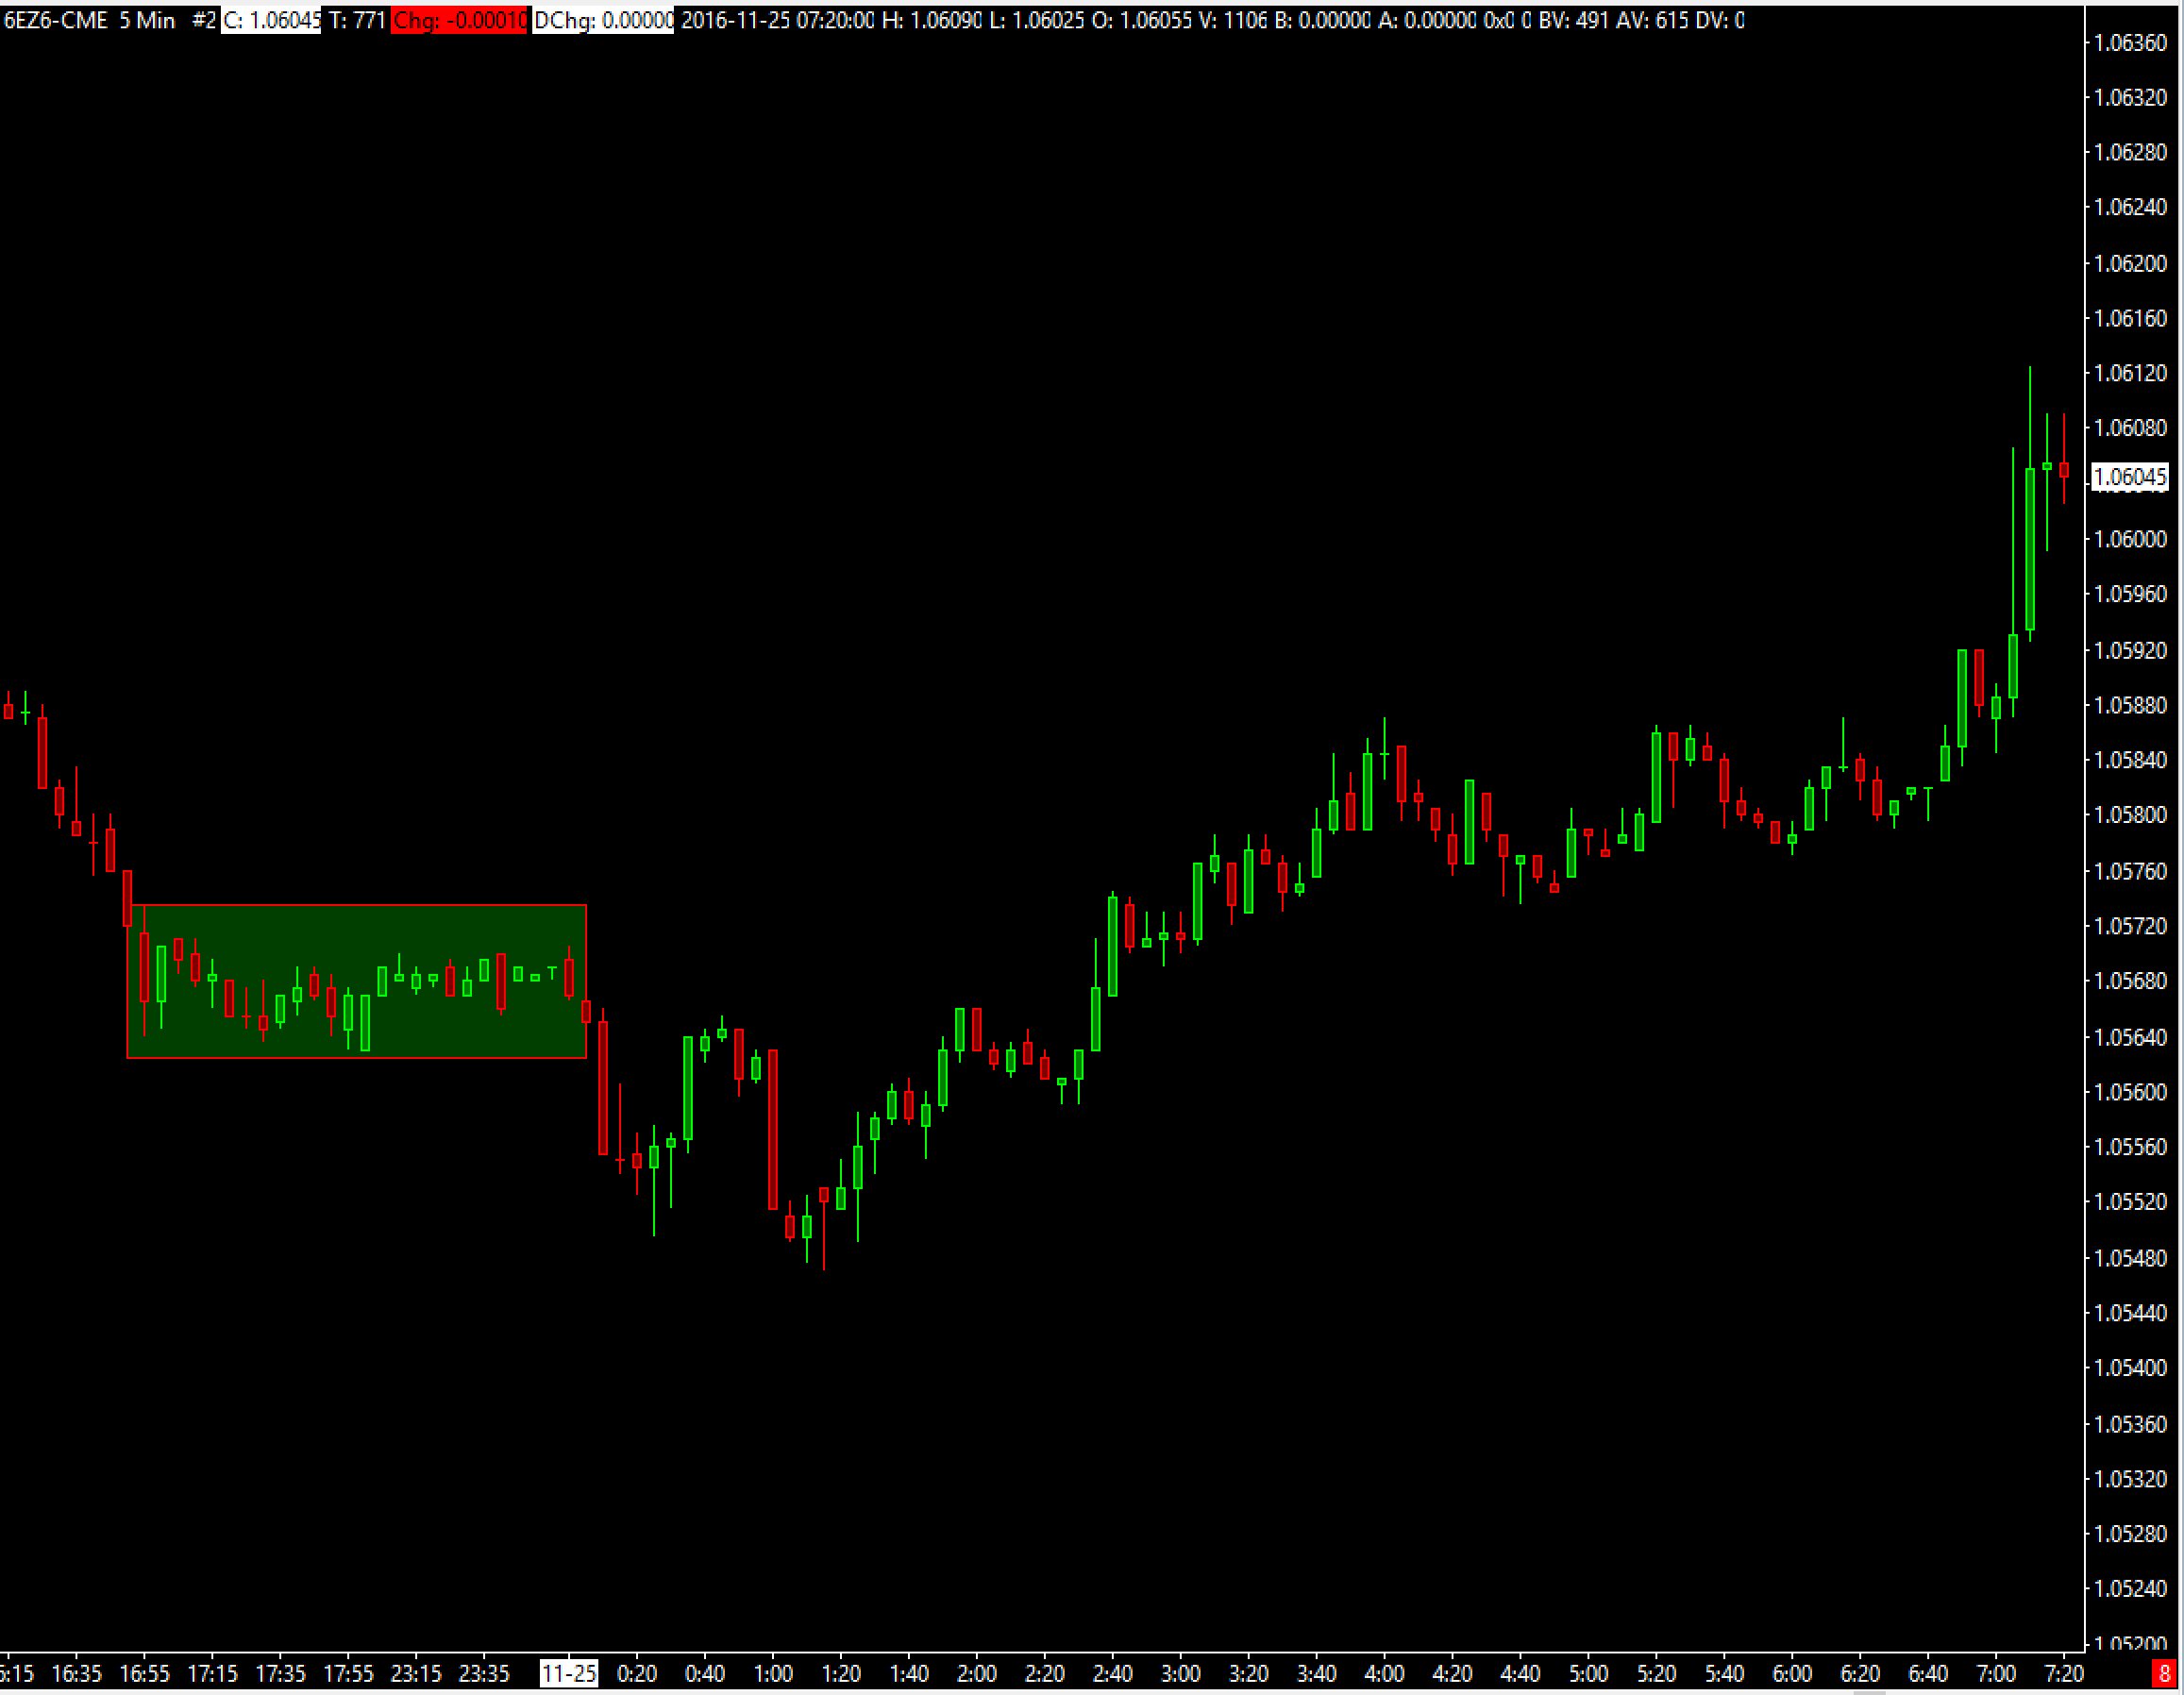 Ticky Chart Trading System